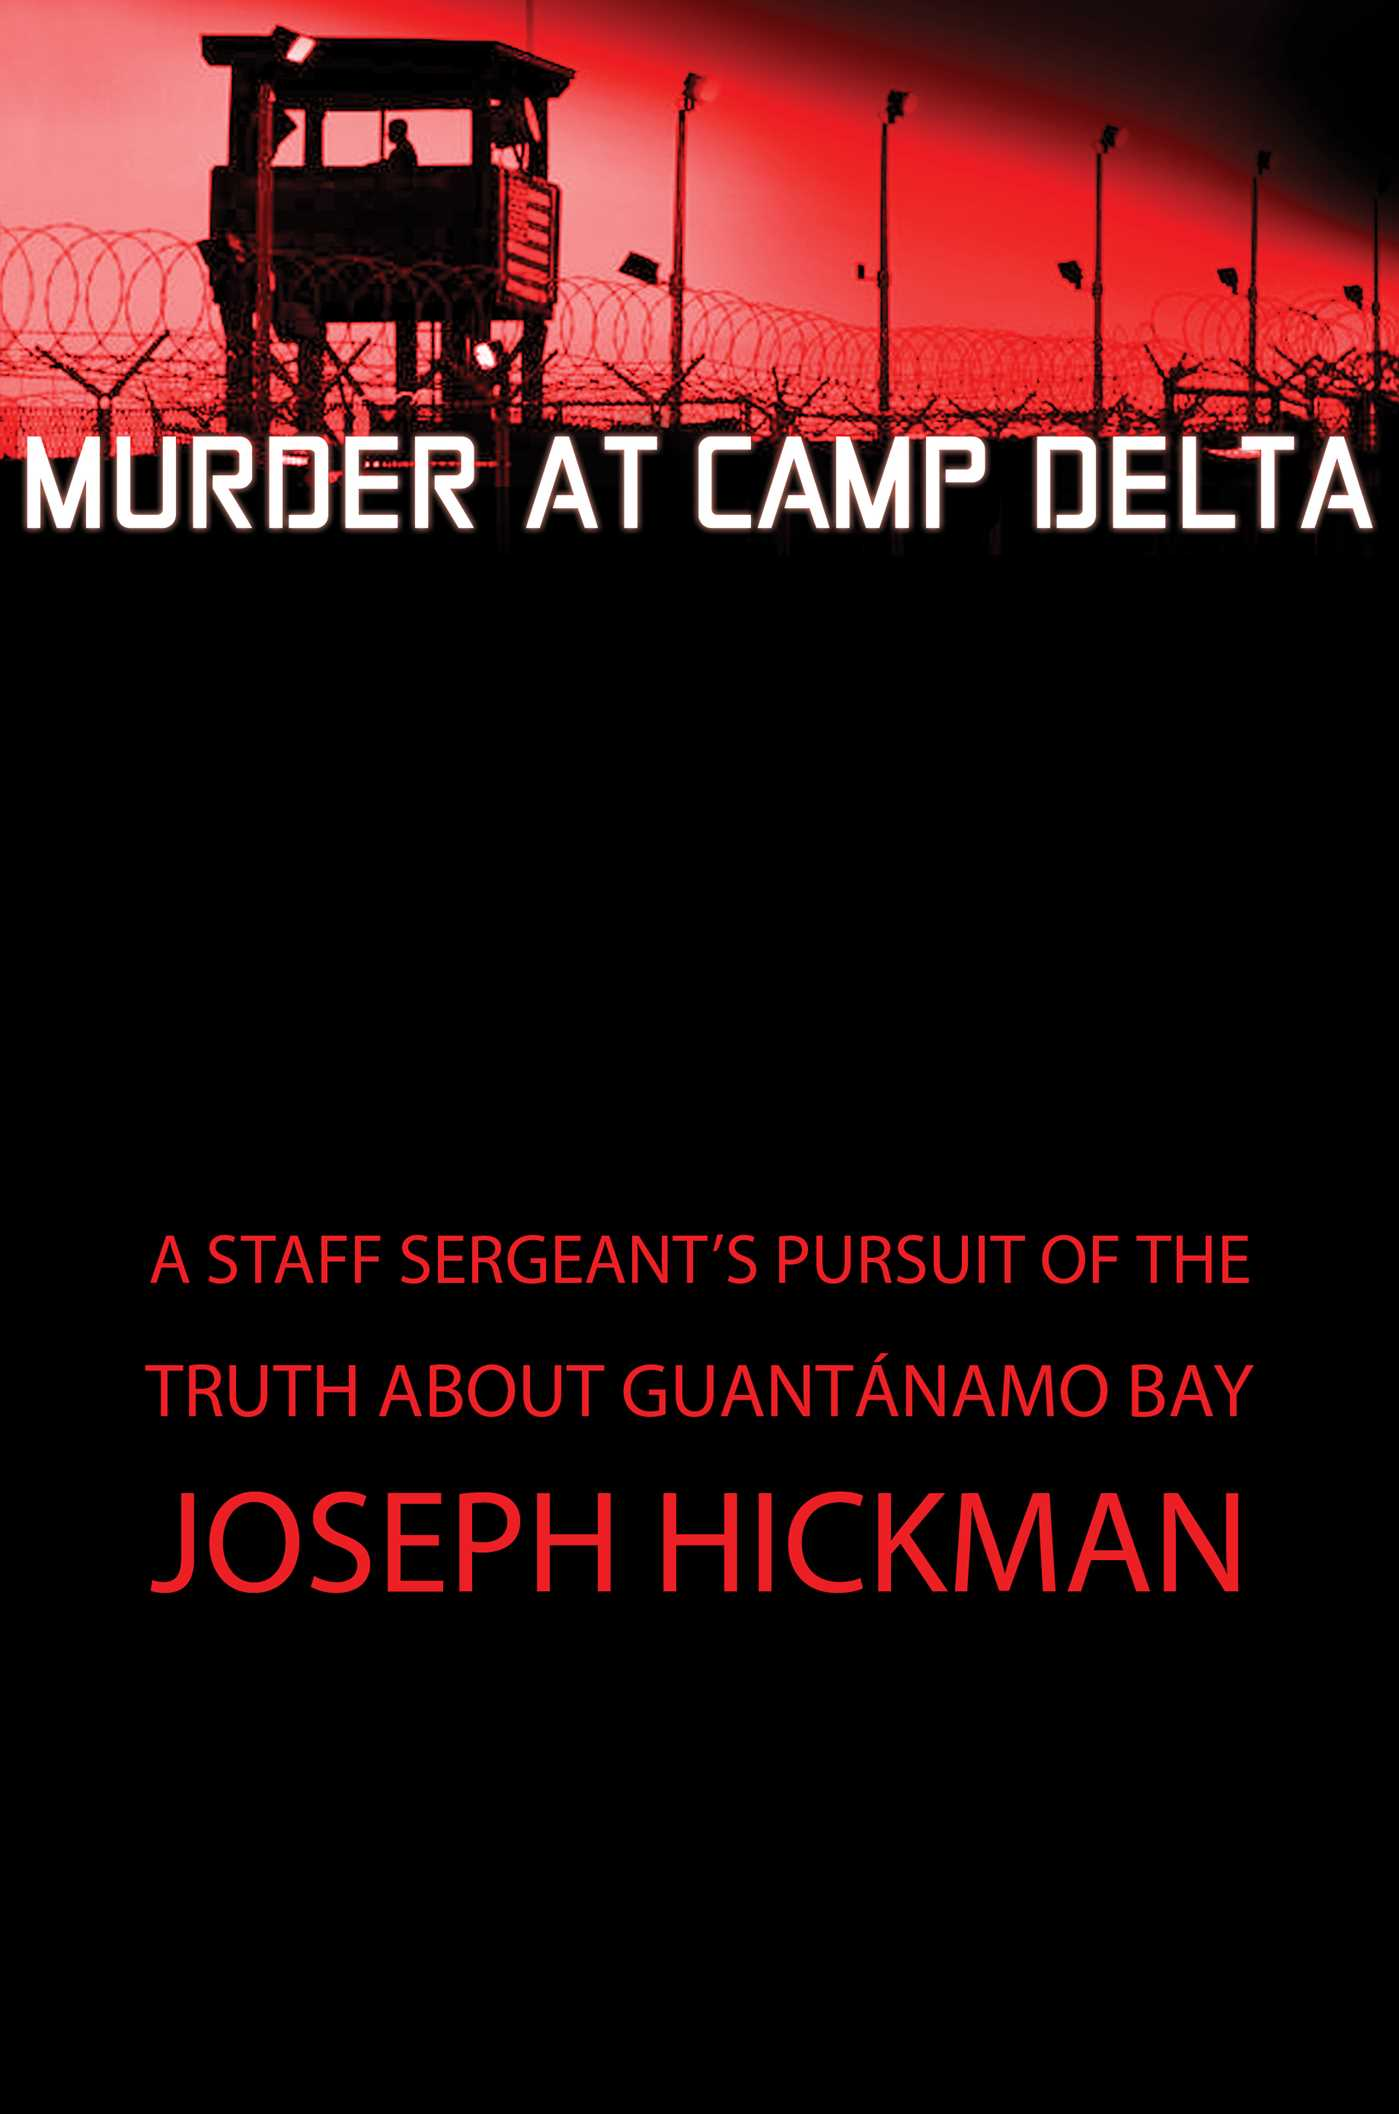 635604671488814467-OFF-Murder-at-Camp-Delta